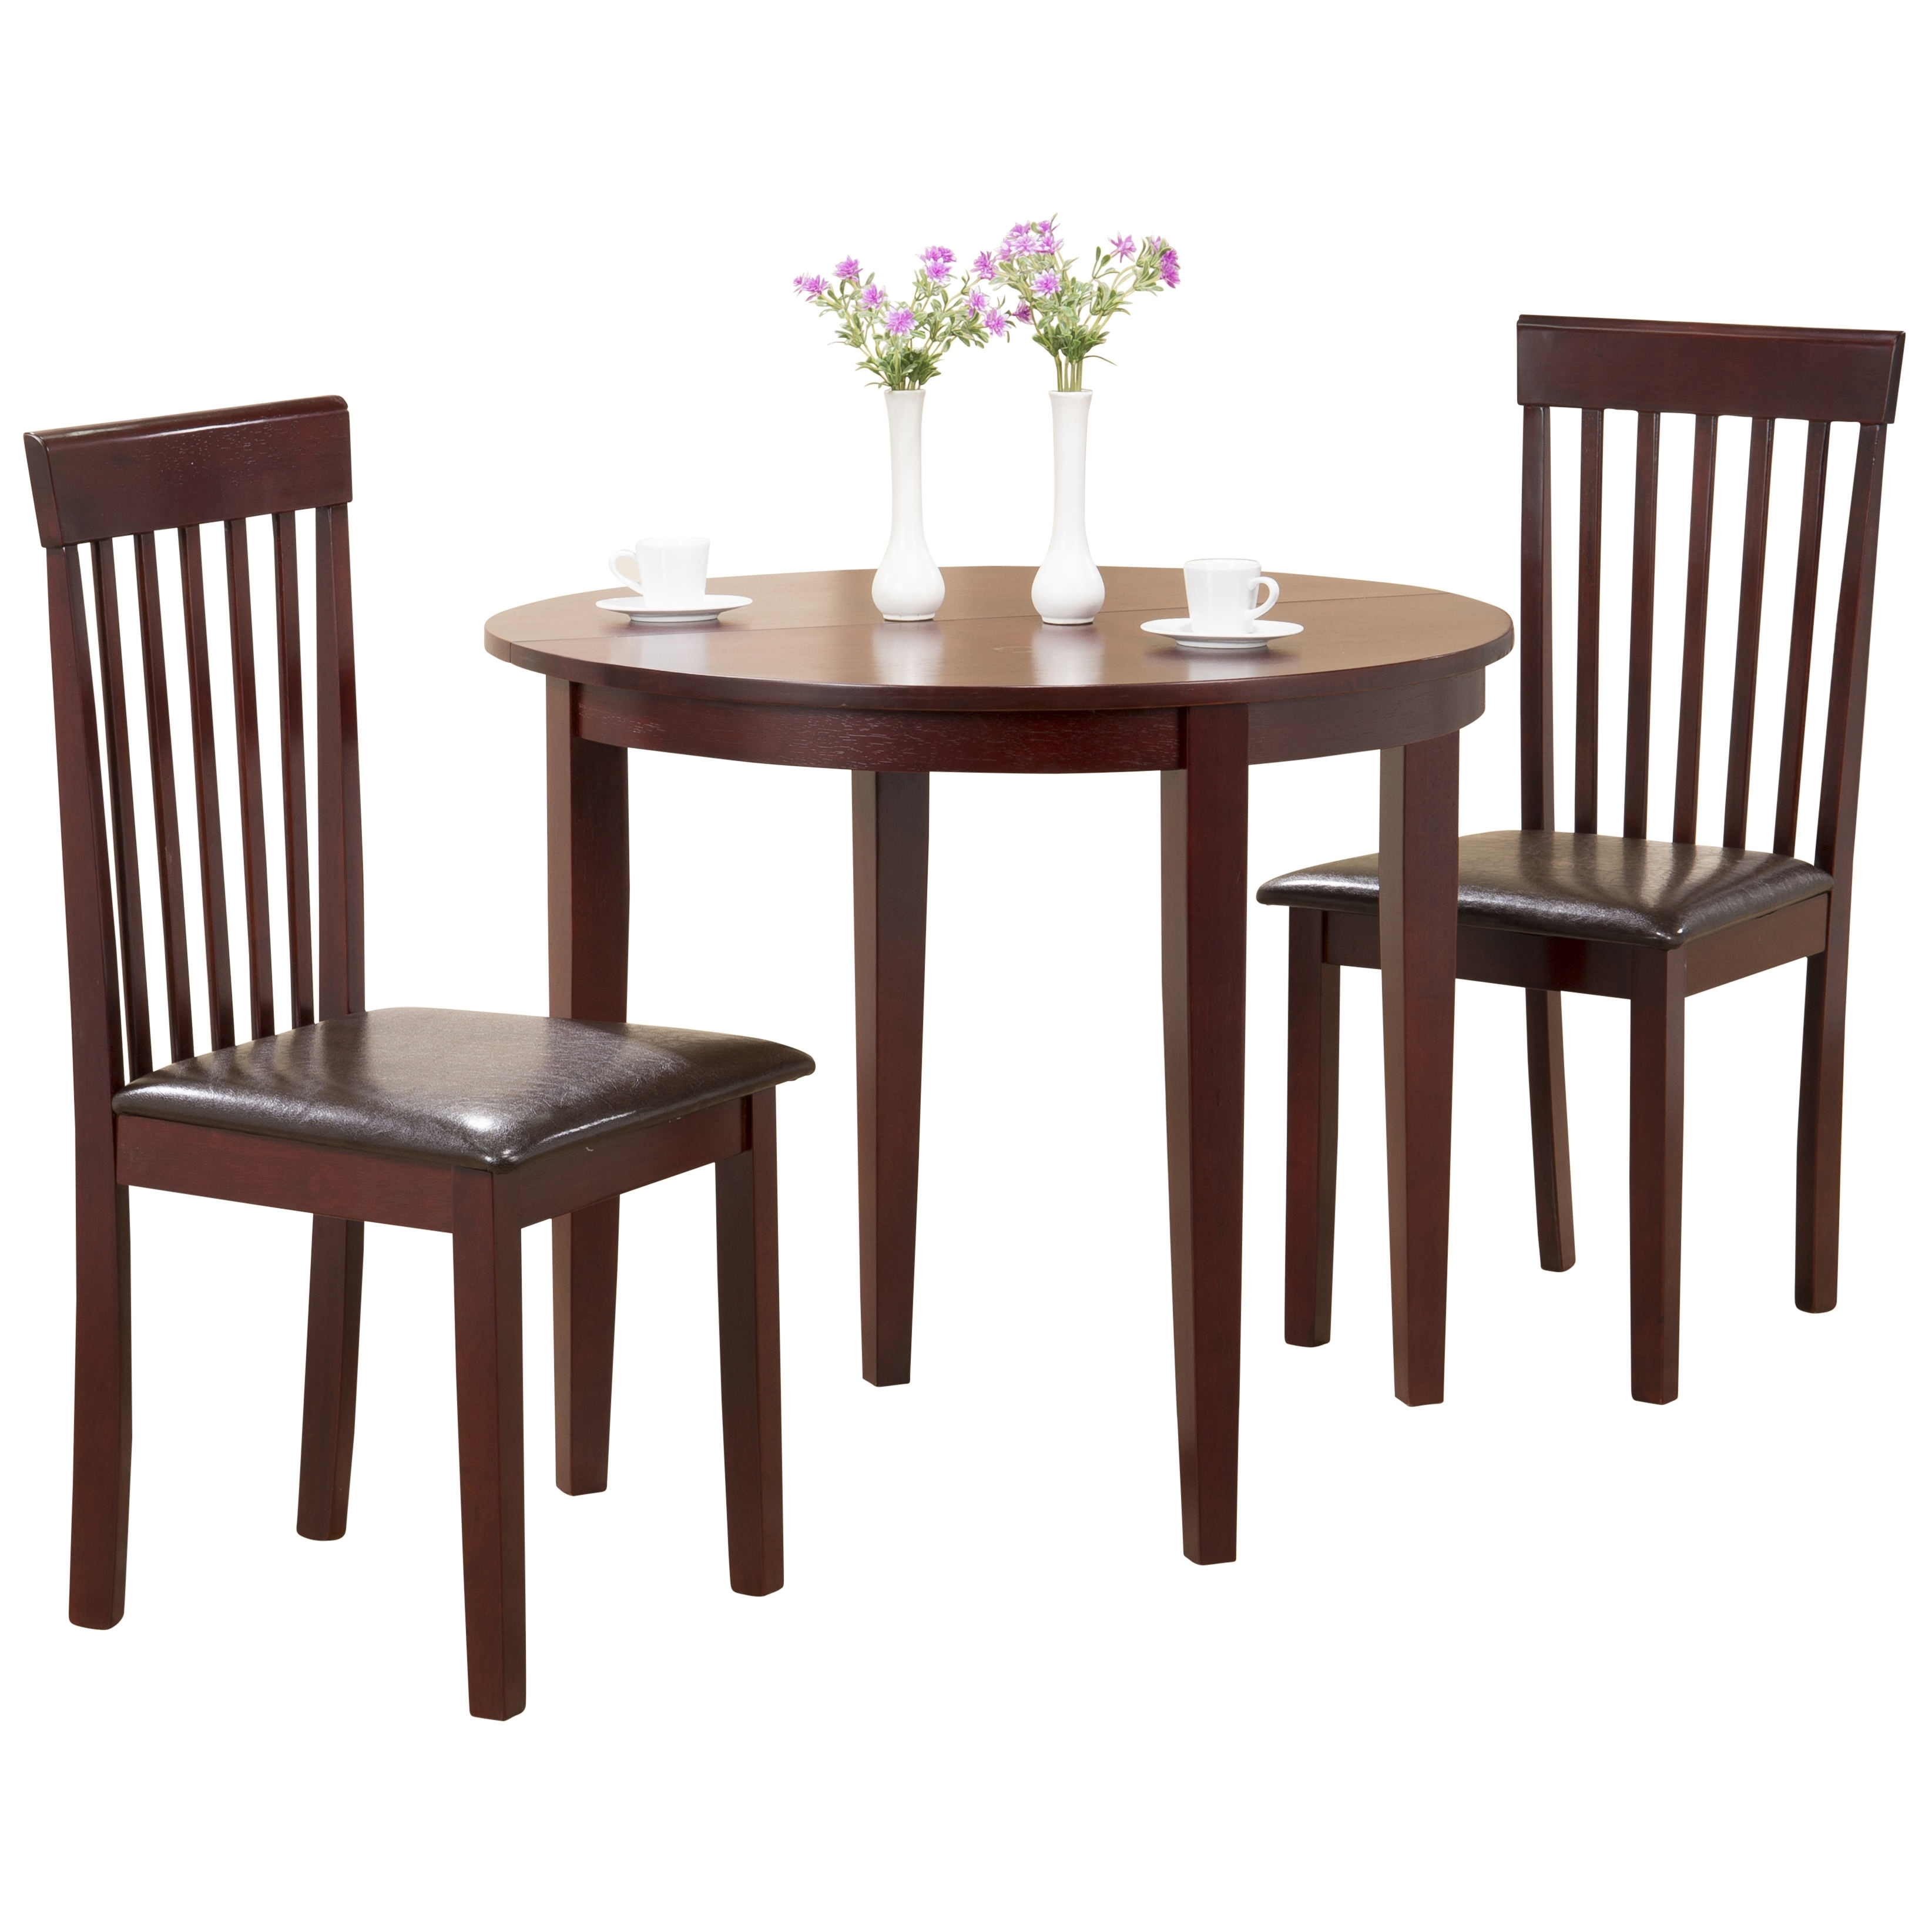 Recent Mahogany Extending Extendable Dining Table And Chair Set With 2 Regarding Mahogany Extending Dining Tables And Chairs (View 19 of 25)